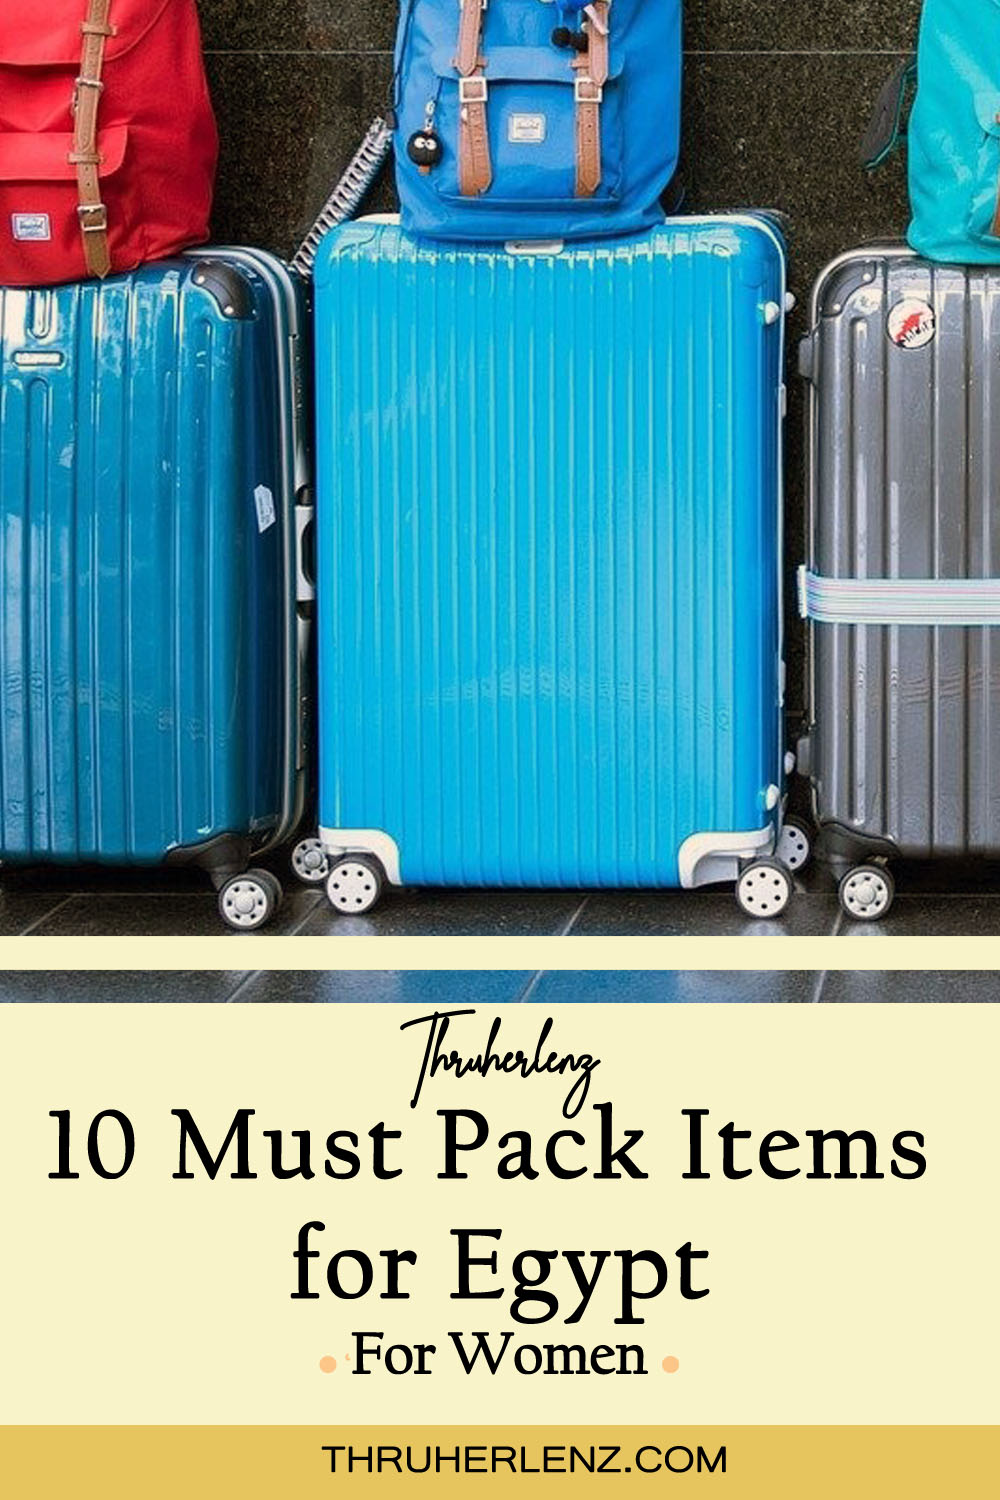 10 Must Pack Items Every Woman Needs to Bring to Egypt